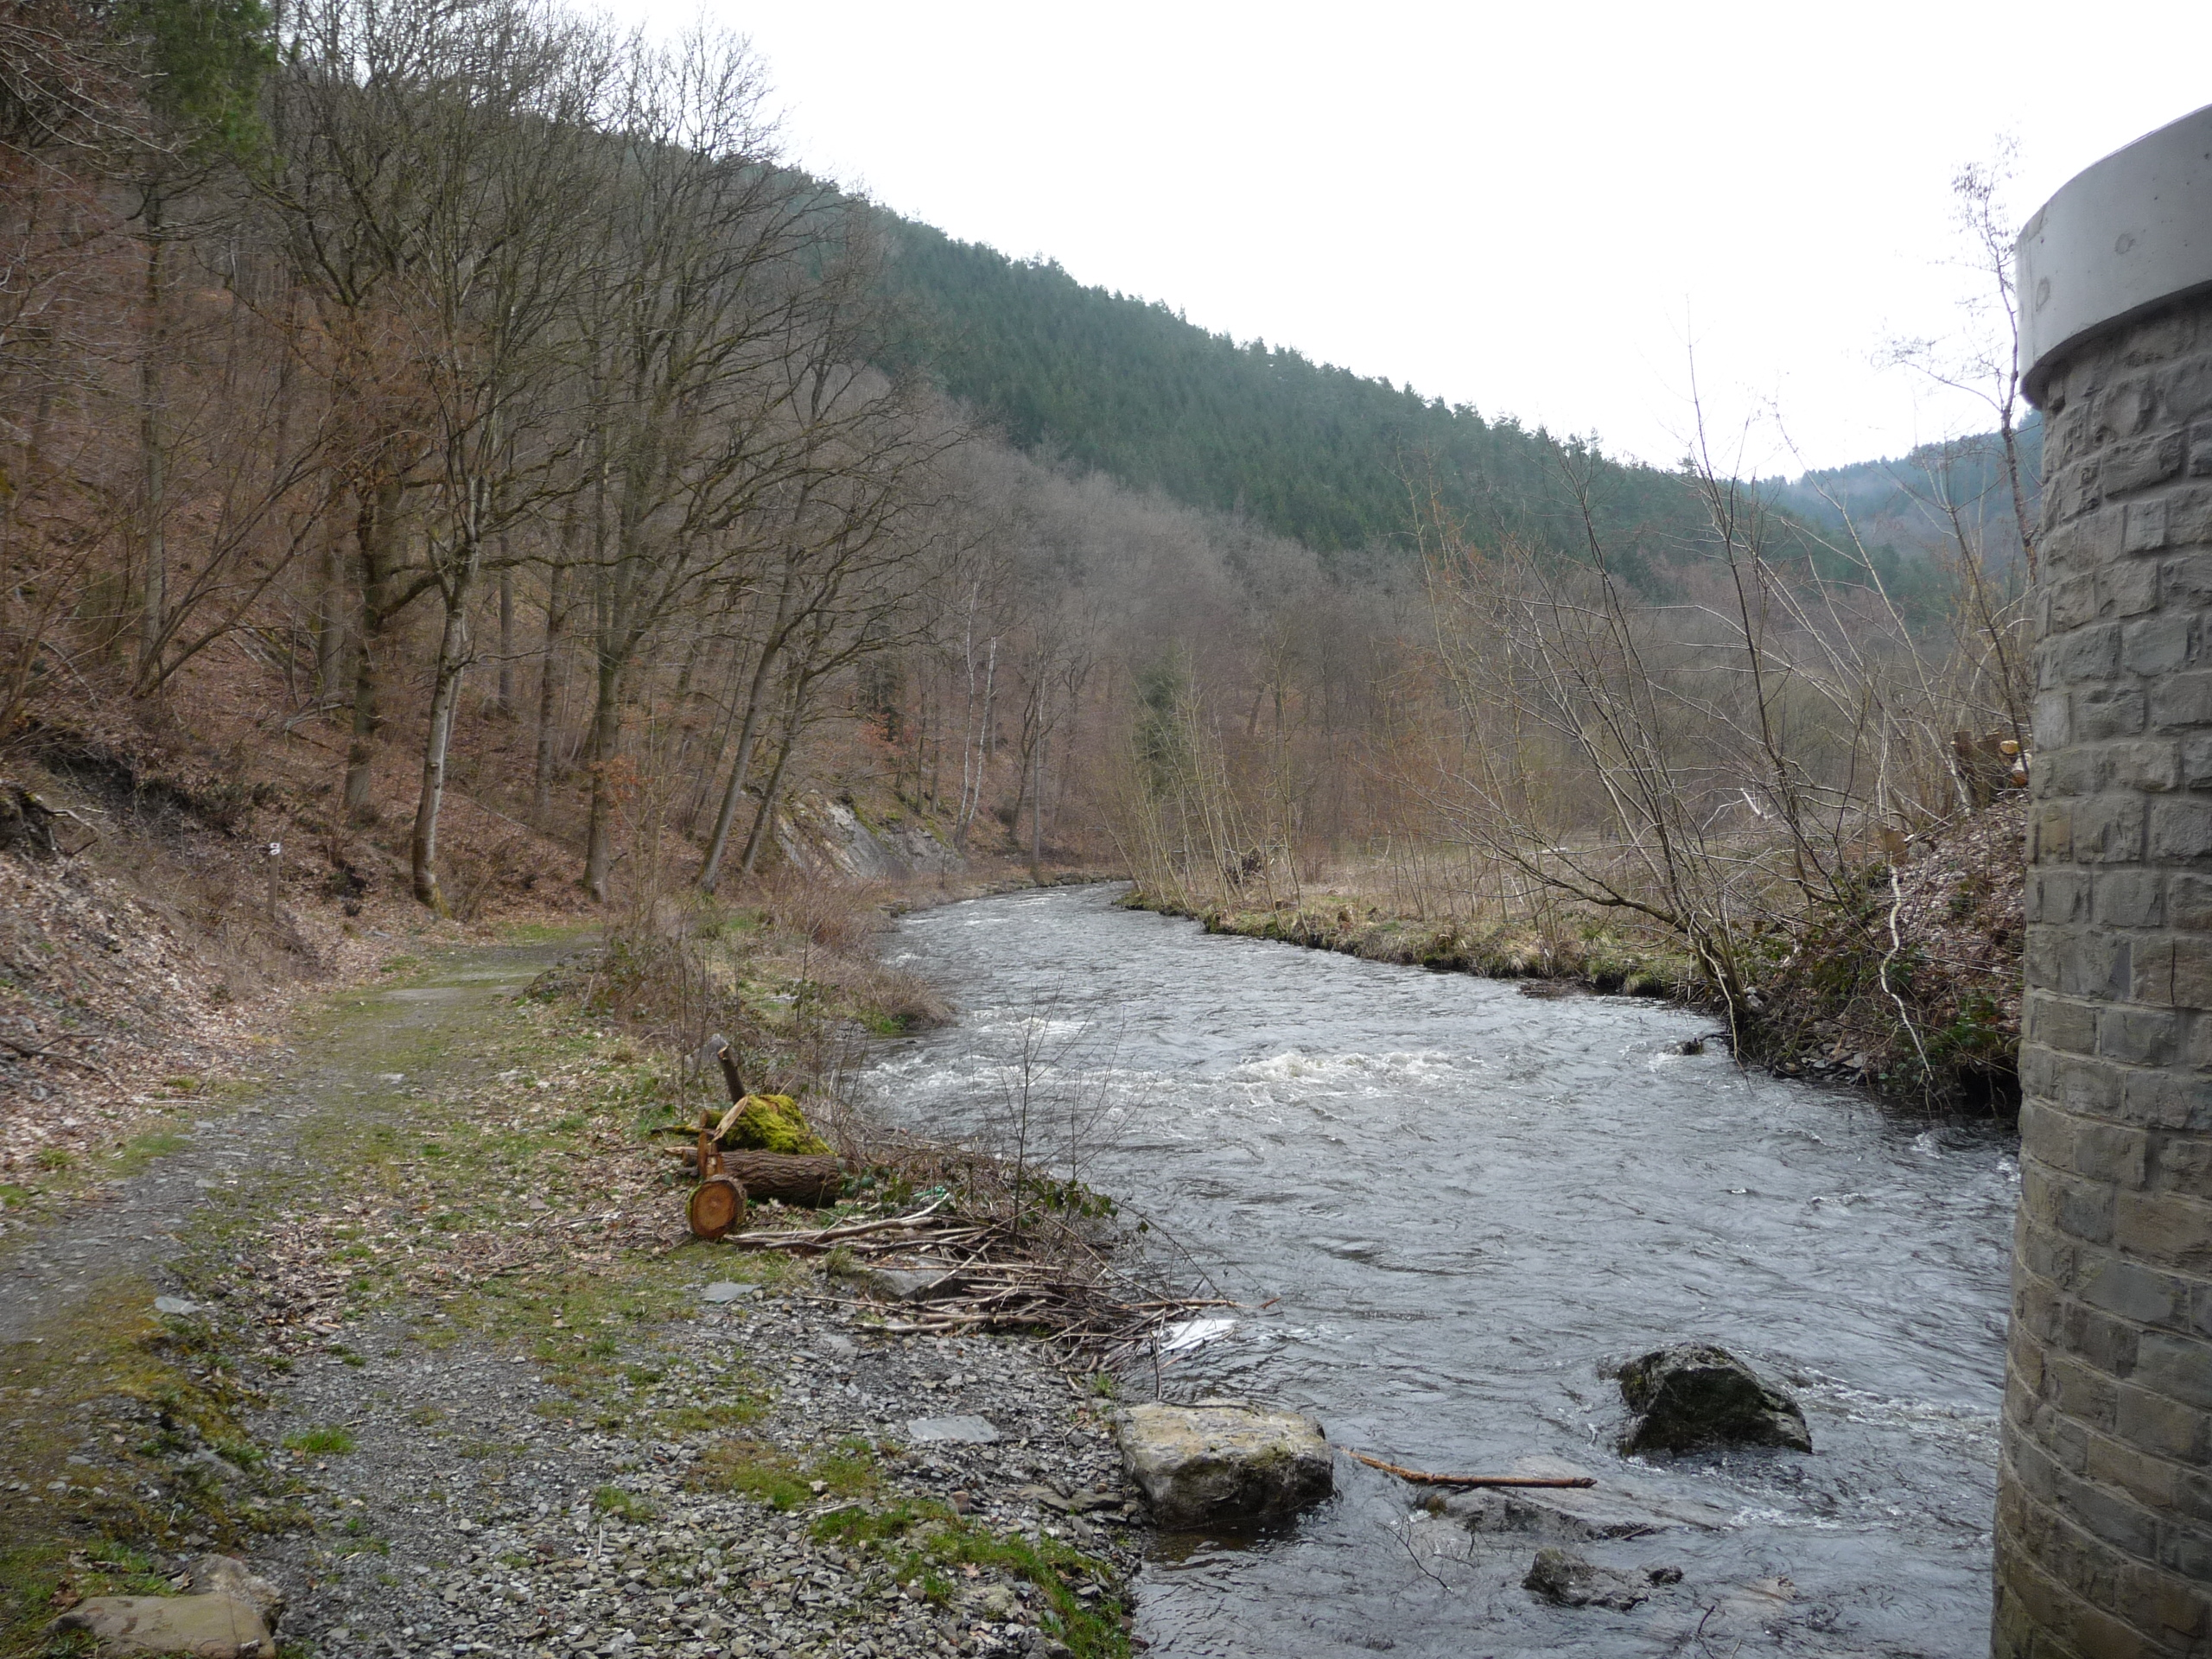 GR571 along the River Salm